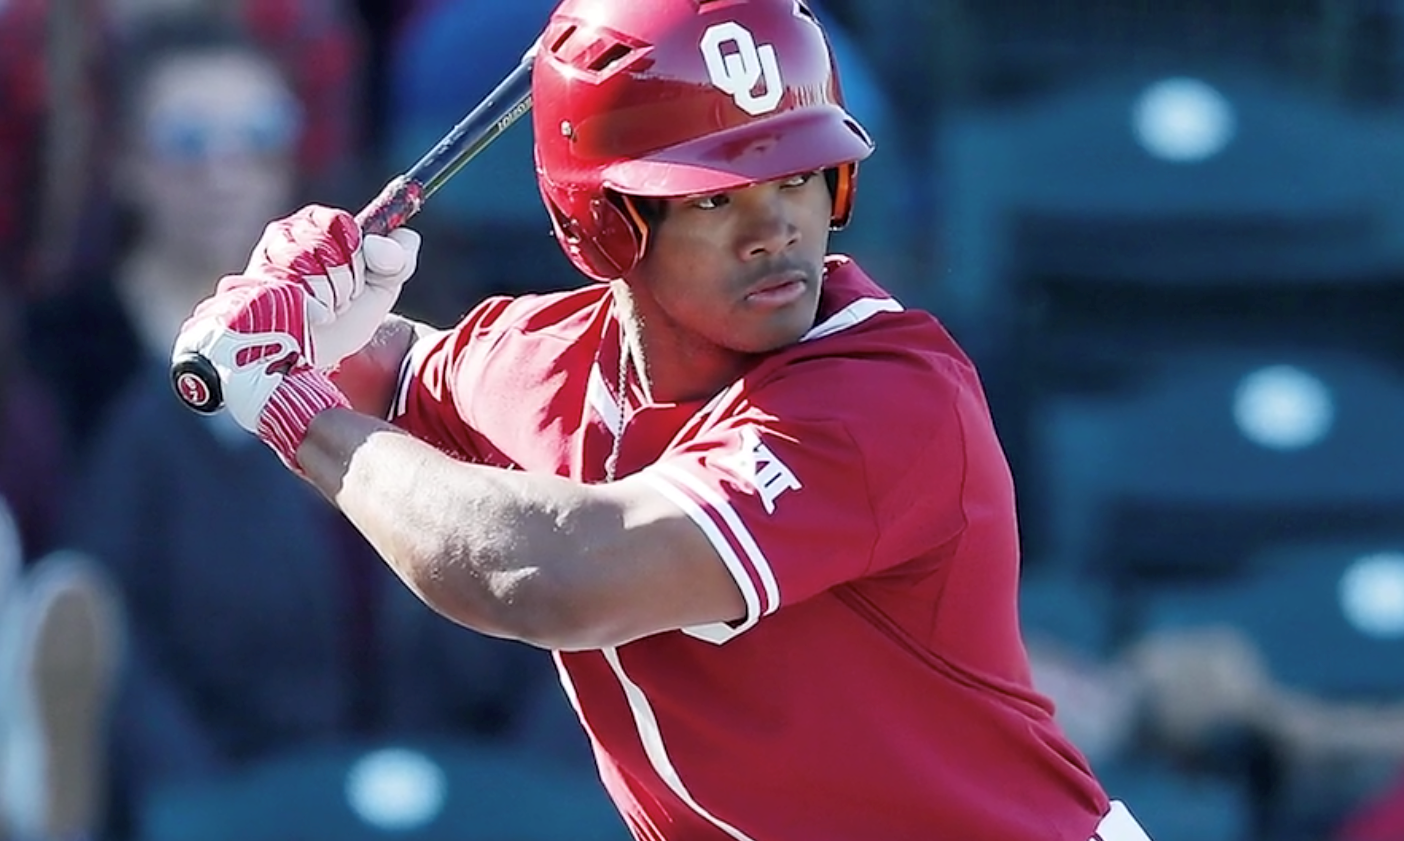 reputable site 9fcbb 161ae A's Select OF Kyler Murray with 9th Overall Selection of ...